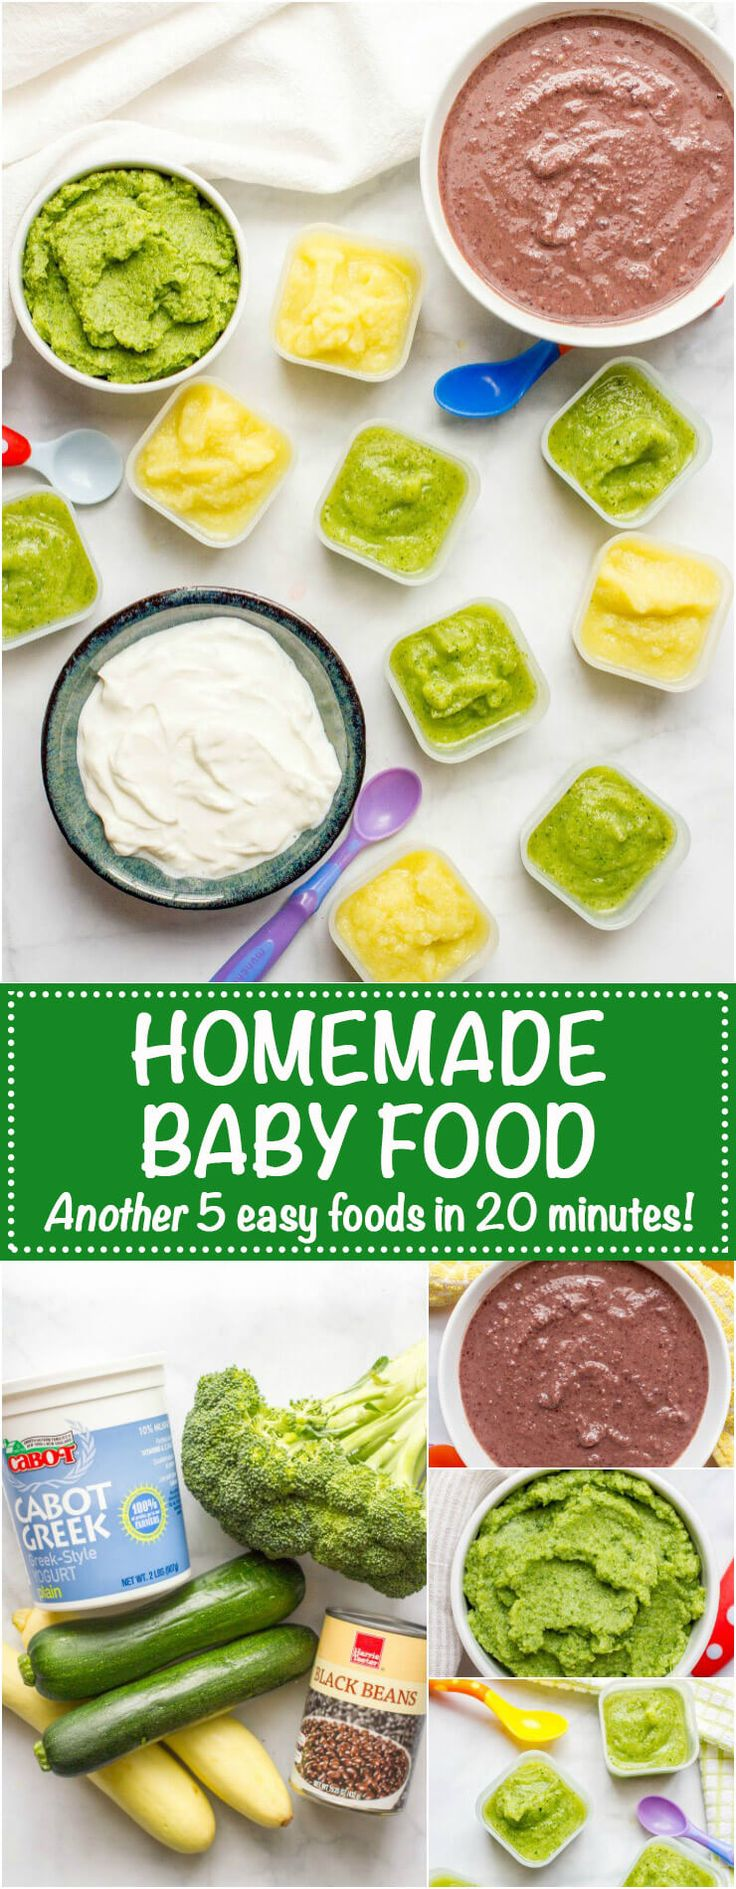 Homemade baby food -- easy how to for broccoli, zucchini, squash, black beans and yogurt, all in just 20 minutes!   www.familyfoodonthetable.com